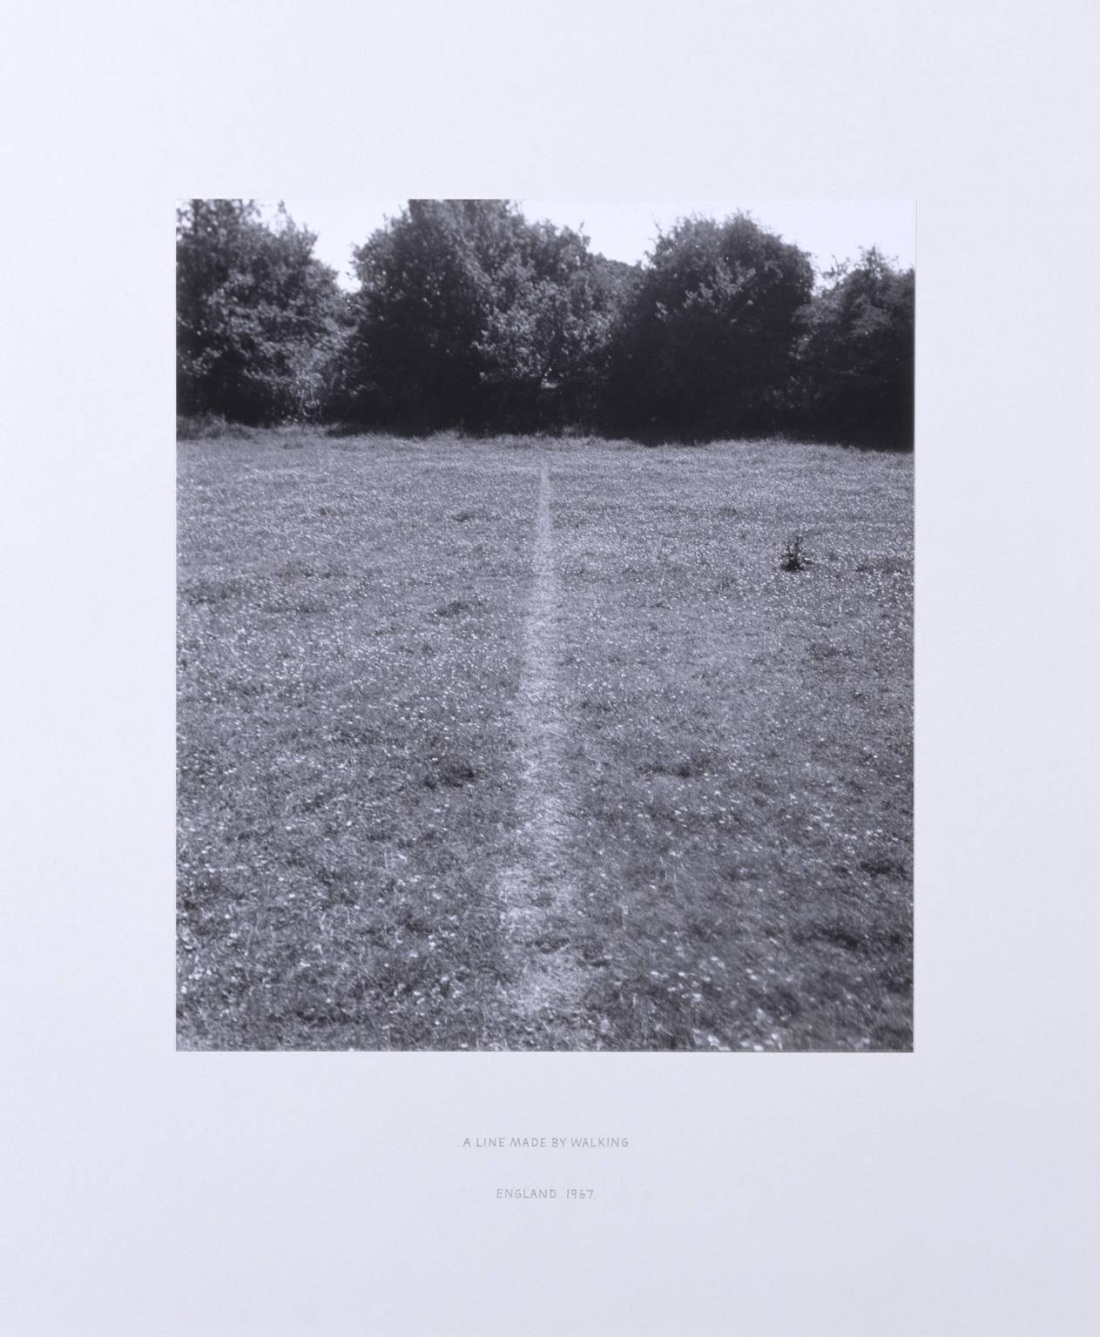 Richard Long, A Line Made By Walking, 1967.